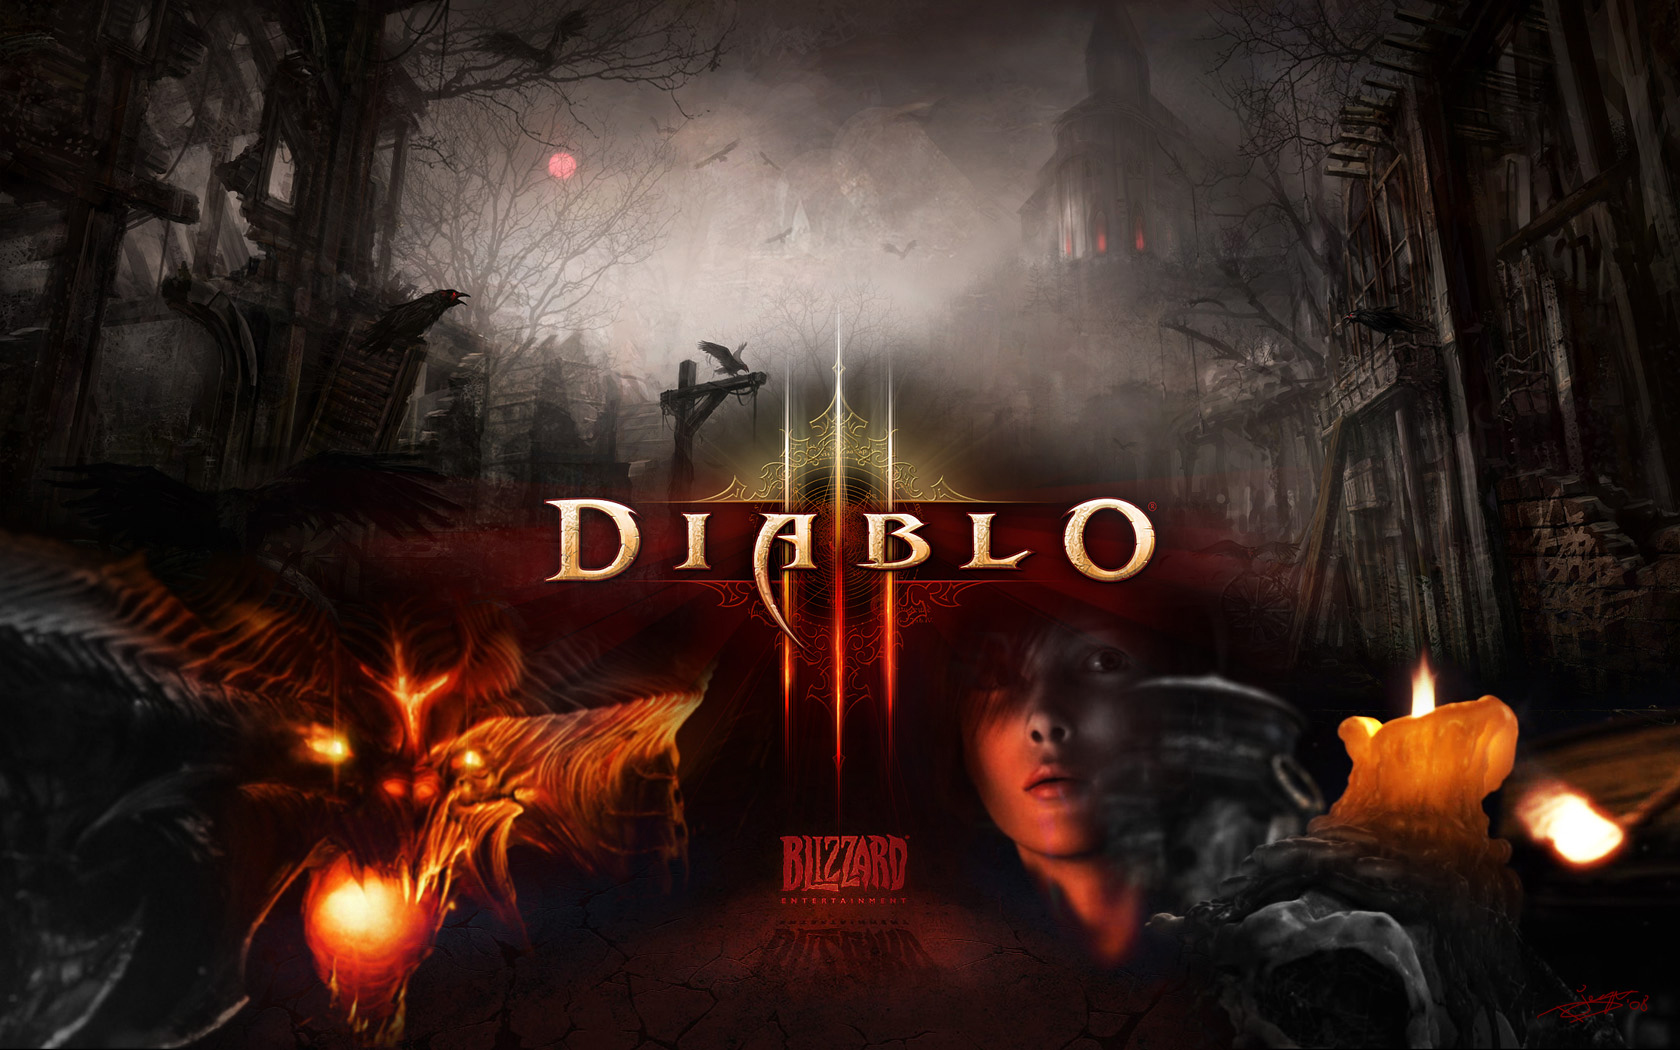 Diablo_3_wallpaper_01b_by_D